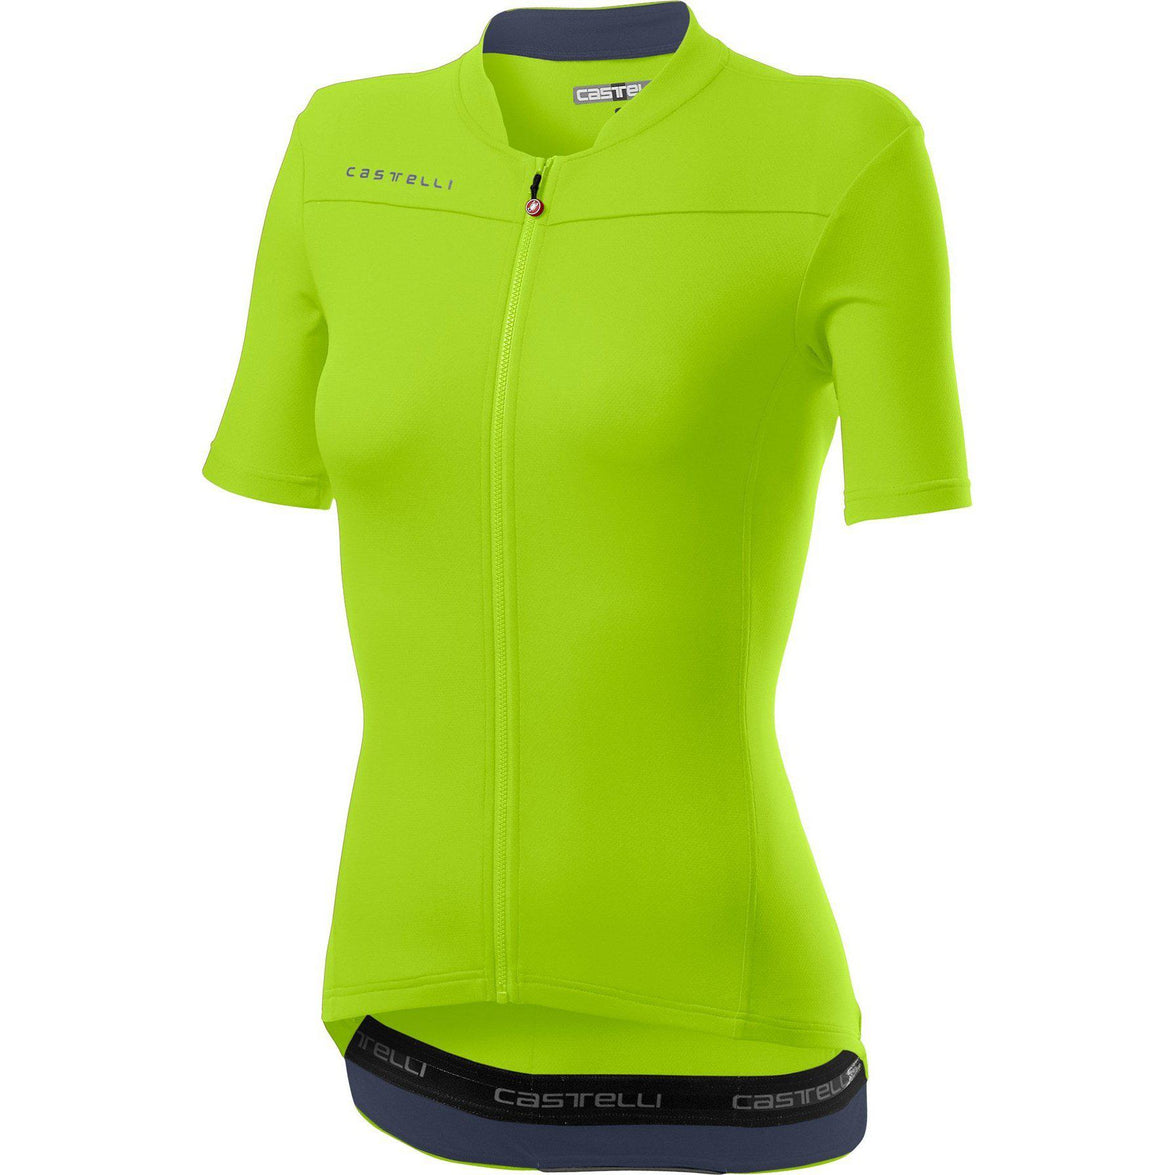 Castelli-Castelli Anima 3 Jersey-Chartreuse/Dark Steel Blue-XS-CS200683841-saddleback-elite-performance-cycling